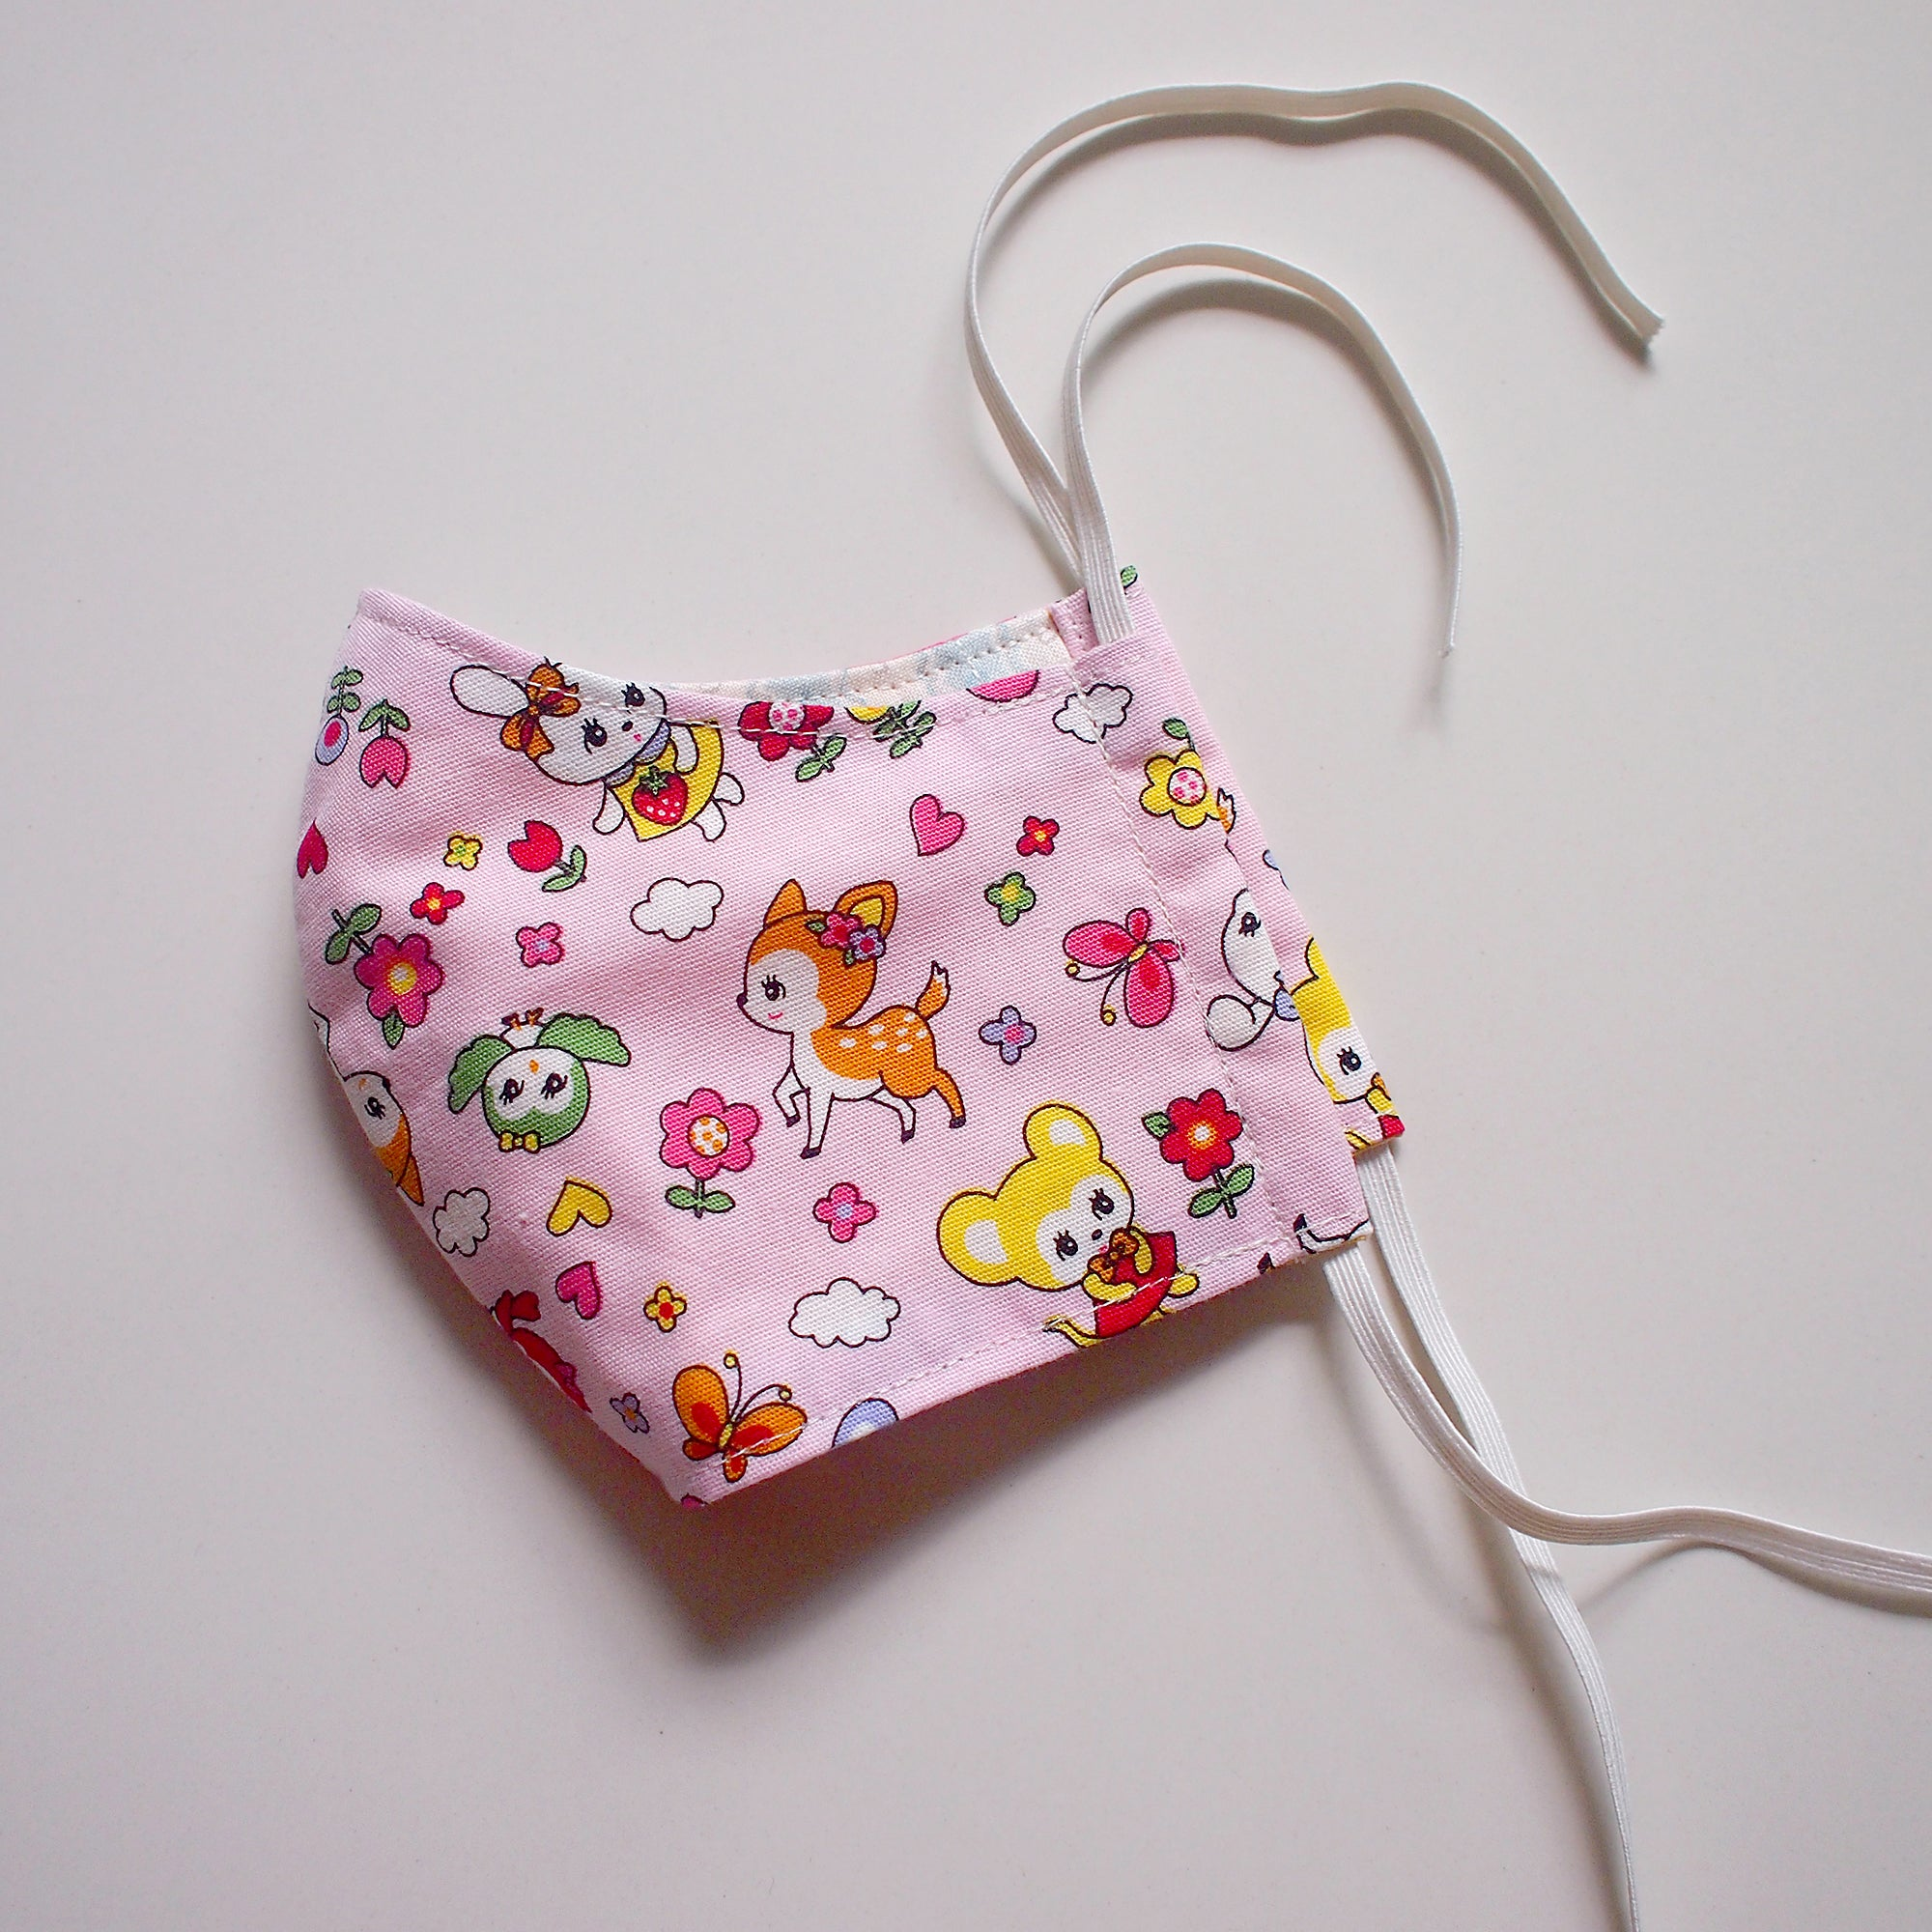 Face Mask (Pocket Insert) Kids Size - Vintage Kawaii Wonderland (Pink)